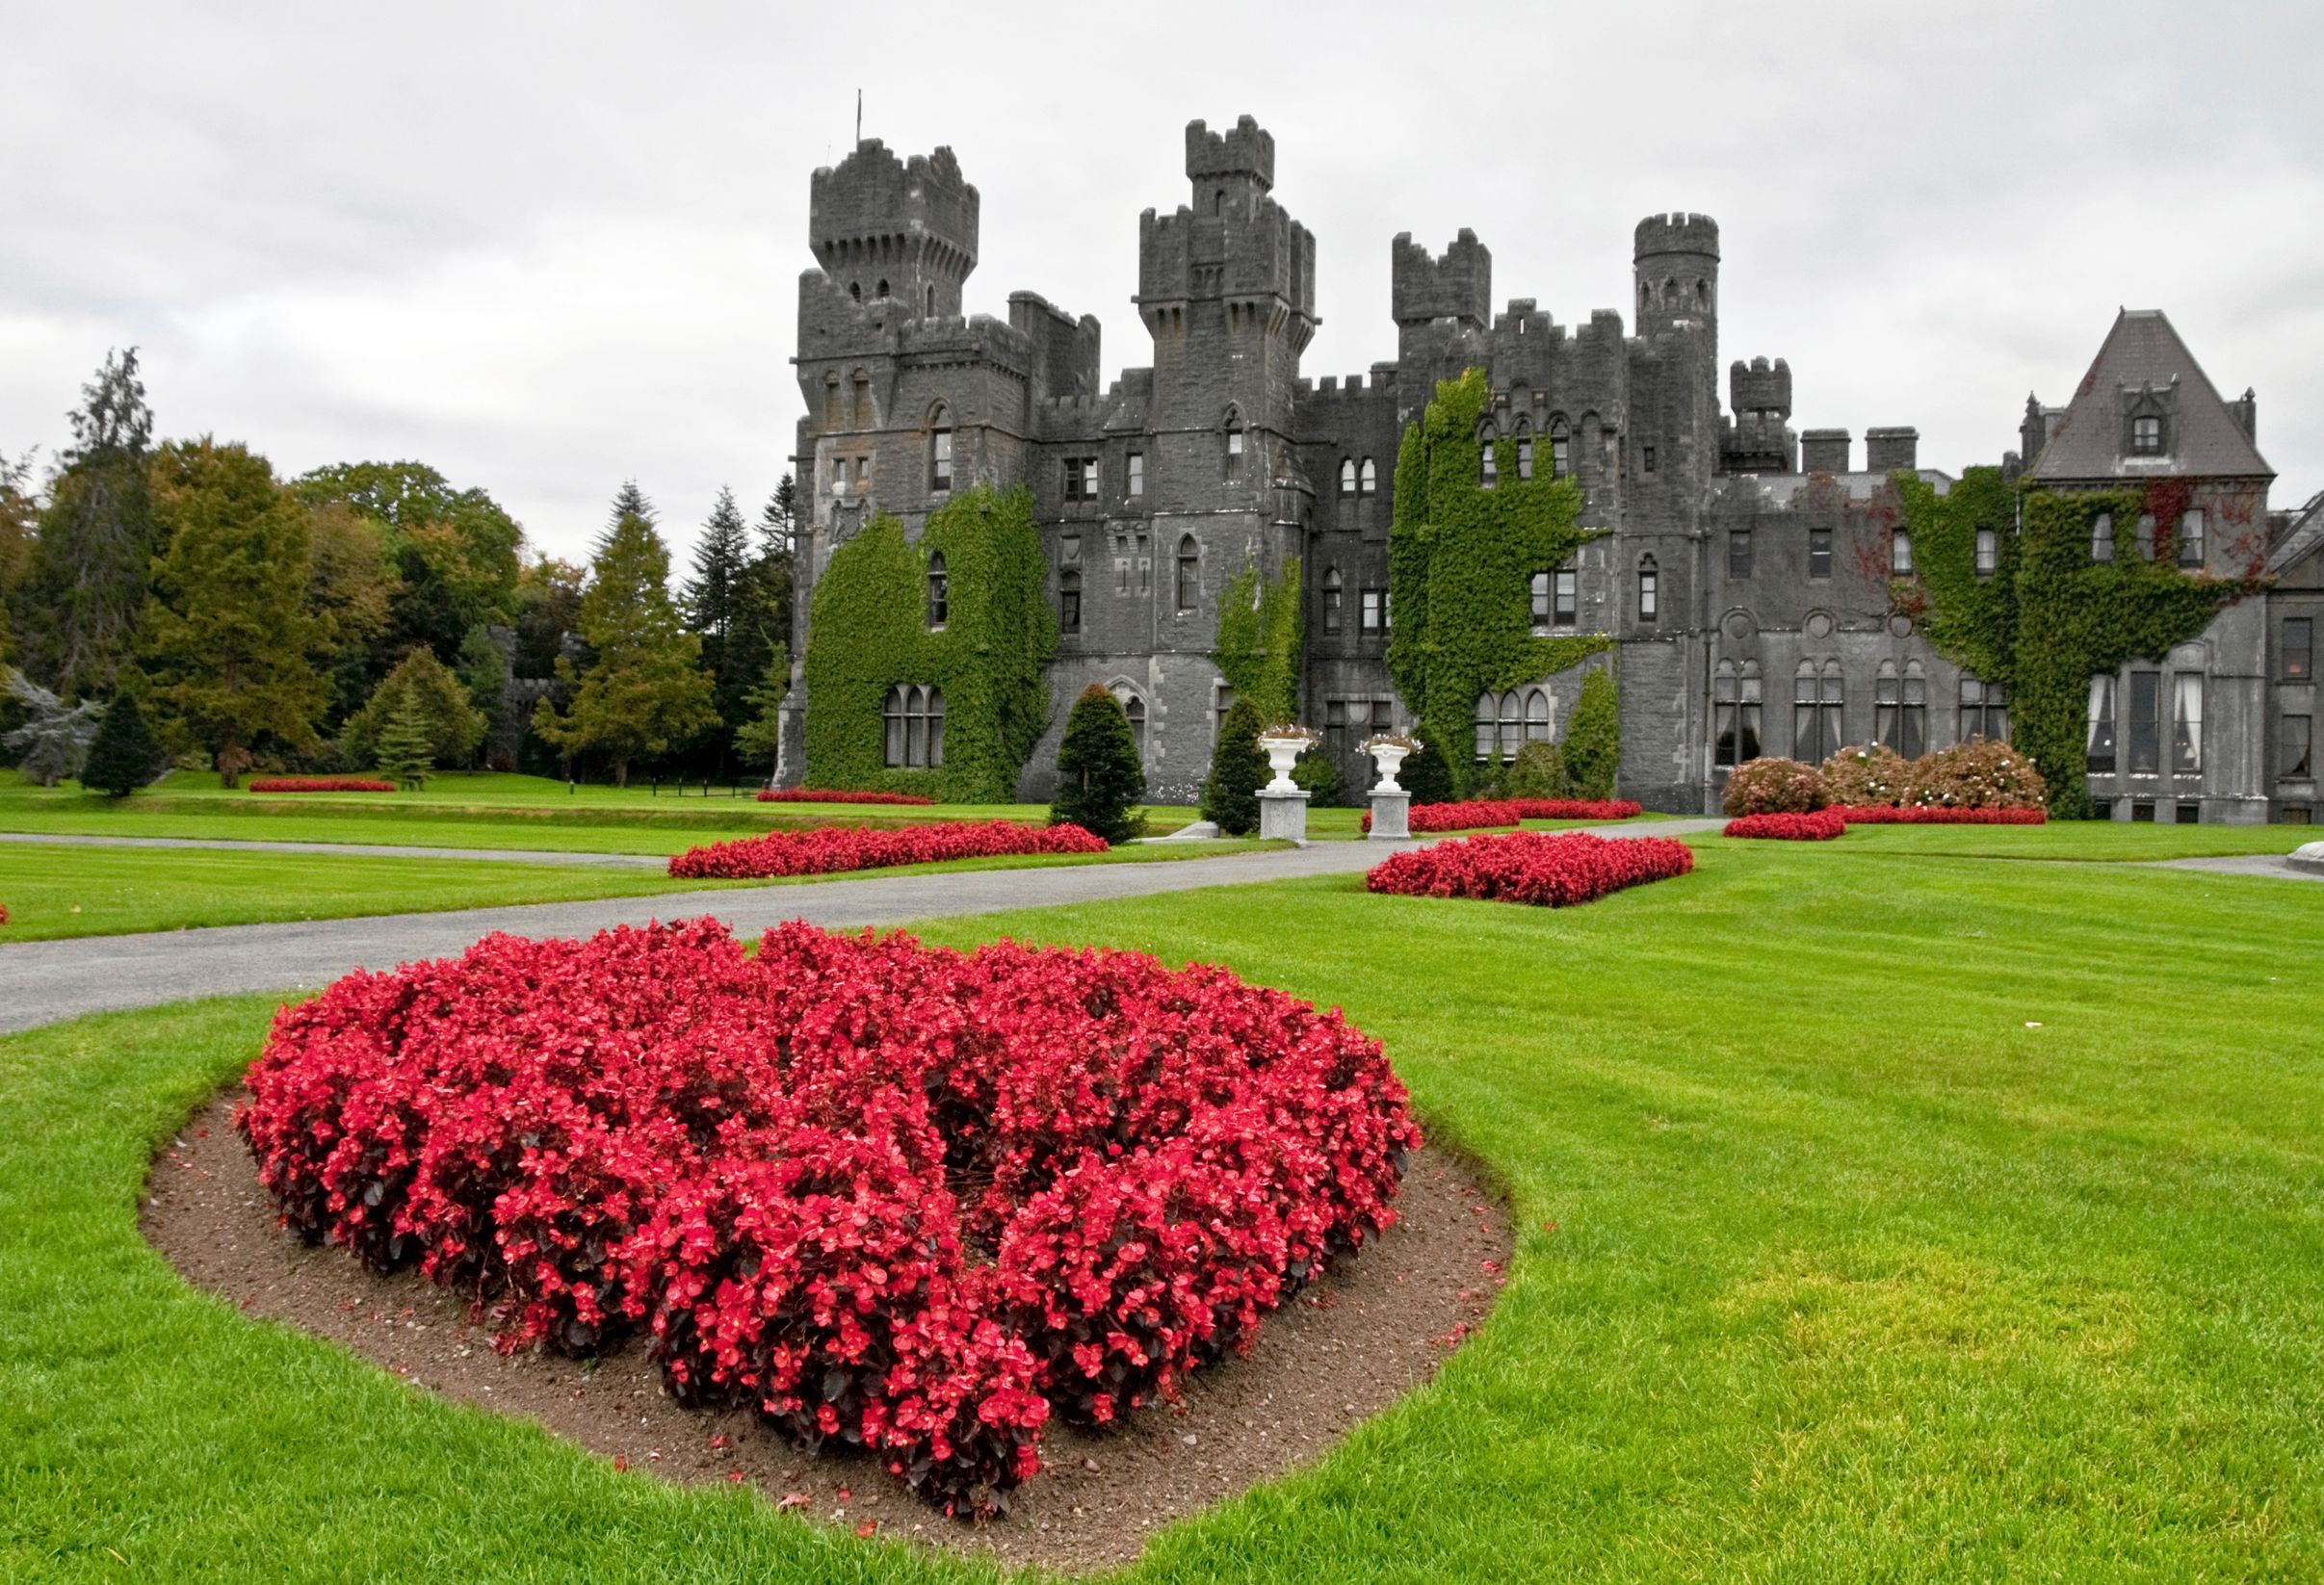 Patch of red flowers in the gardens of Ashford Castle, one of the most luxurious castle hotels in Ireland